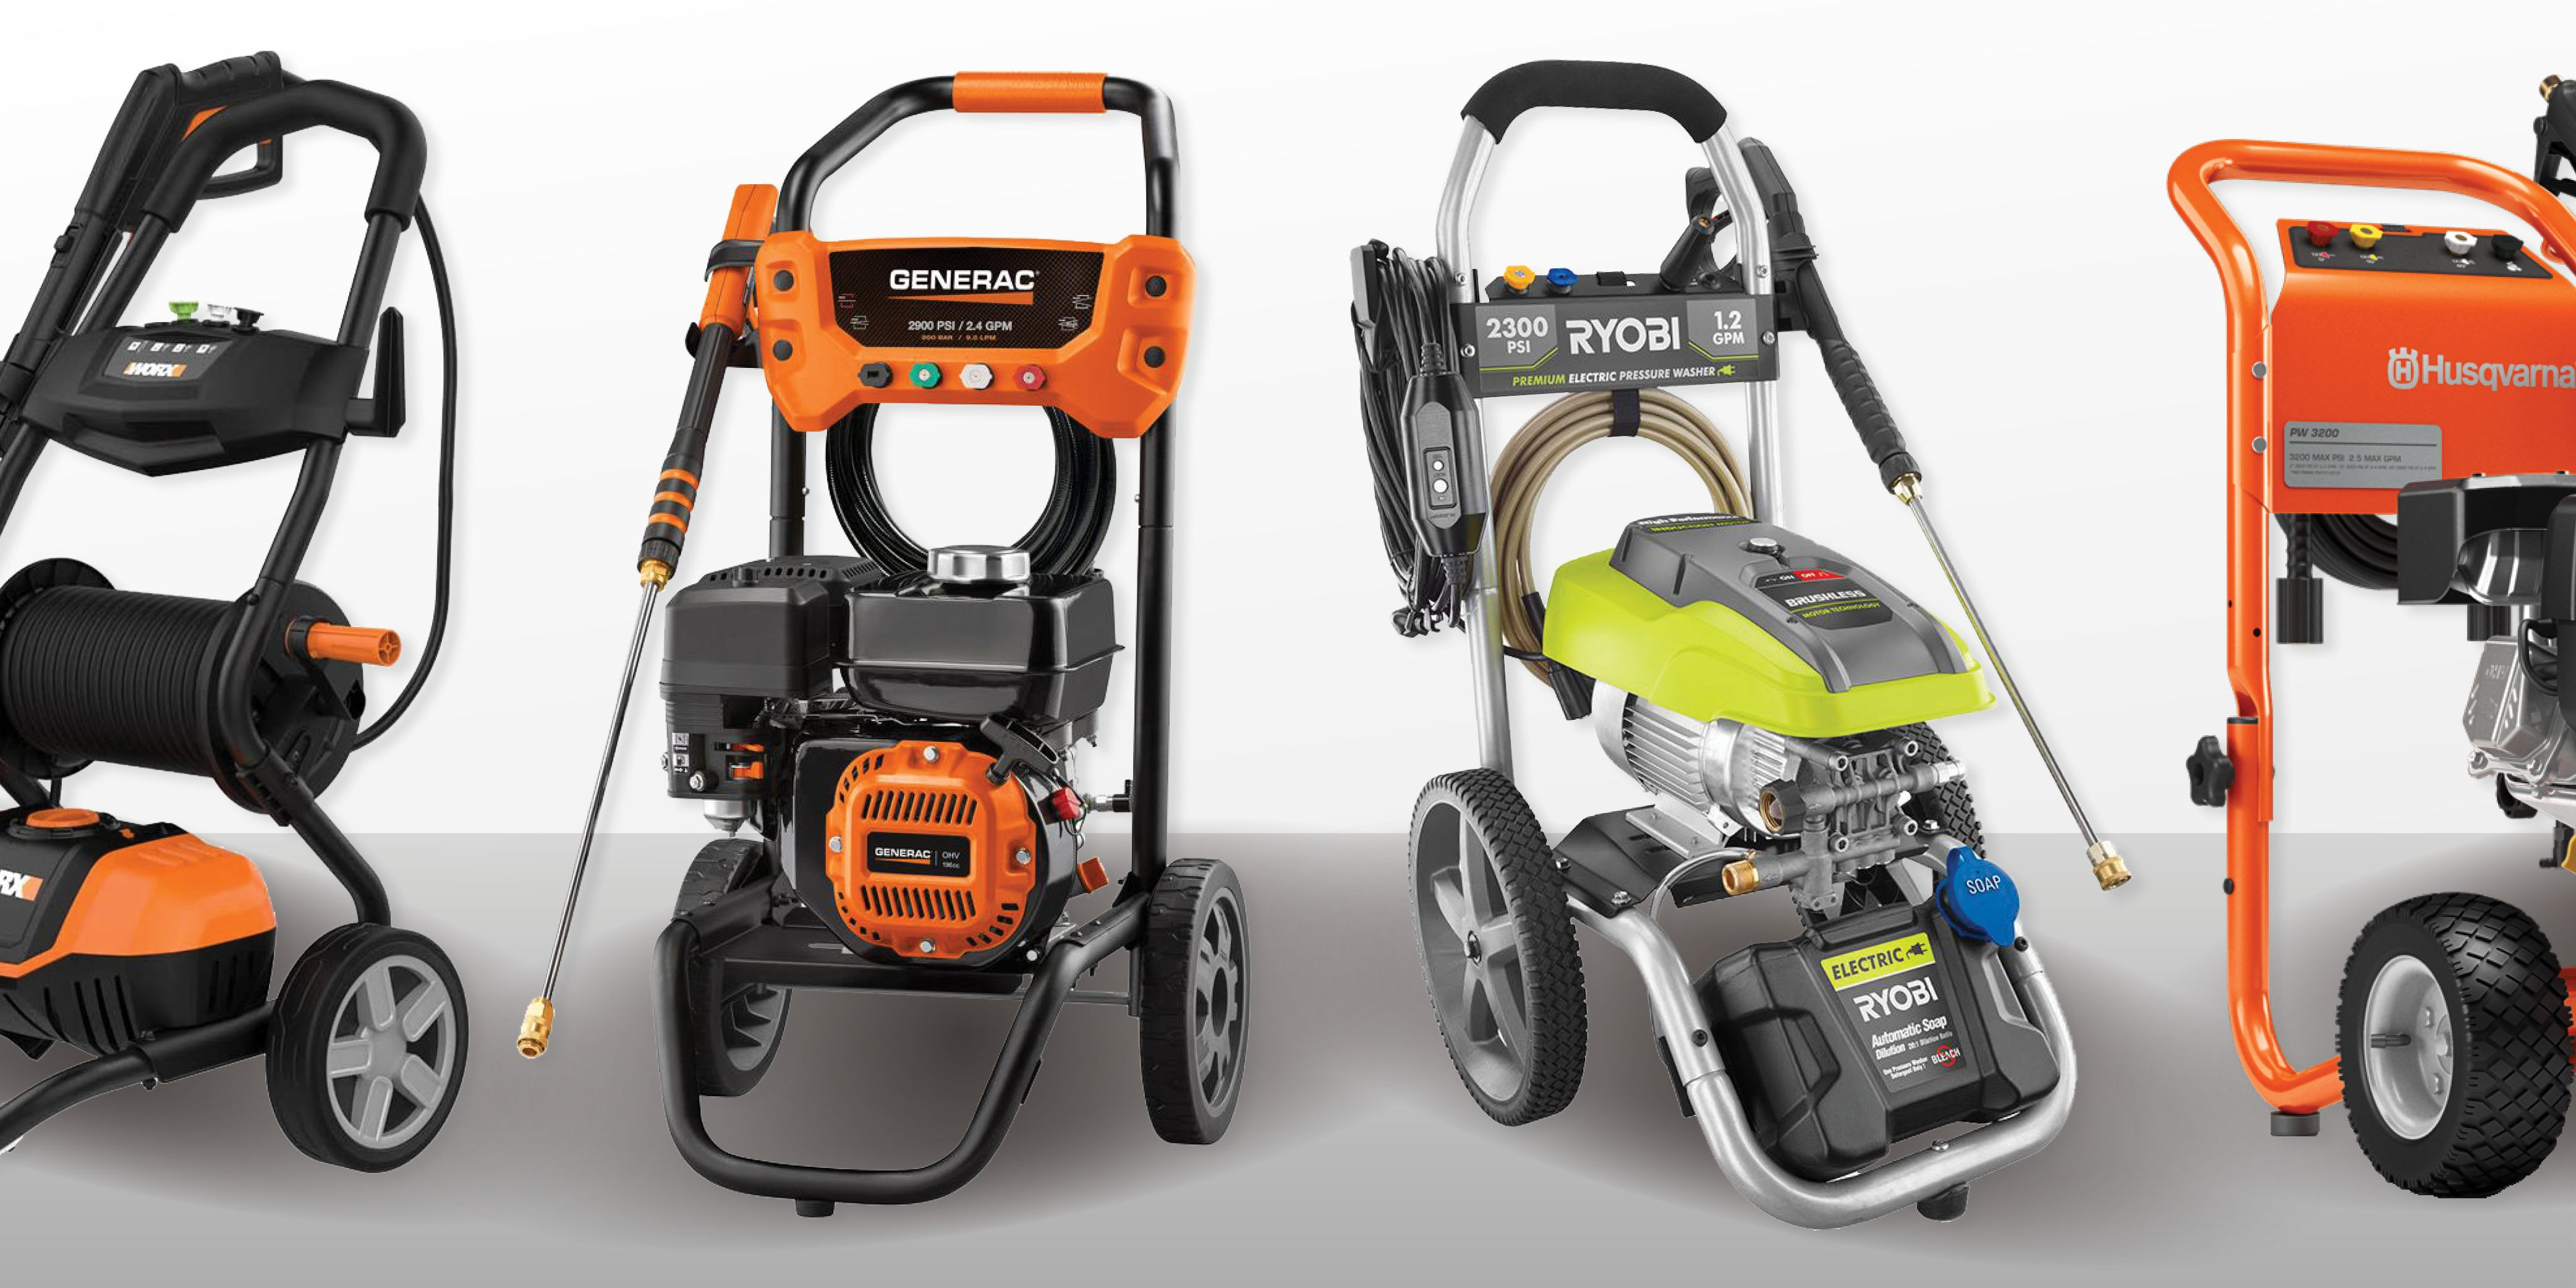 Best Pressure Washer Reviews Top Pressure Washers Tests